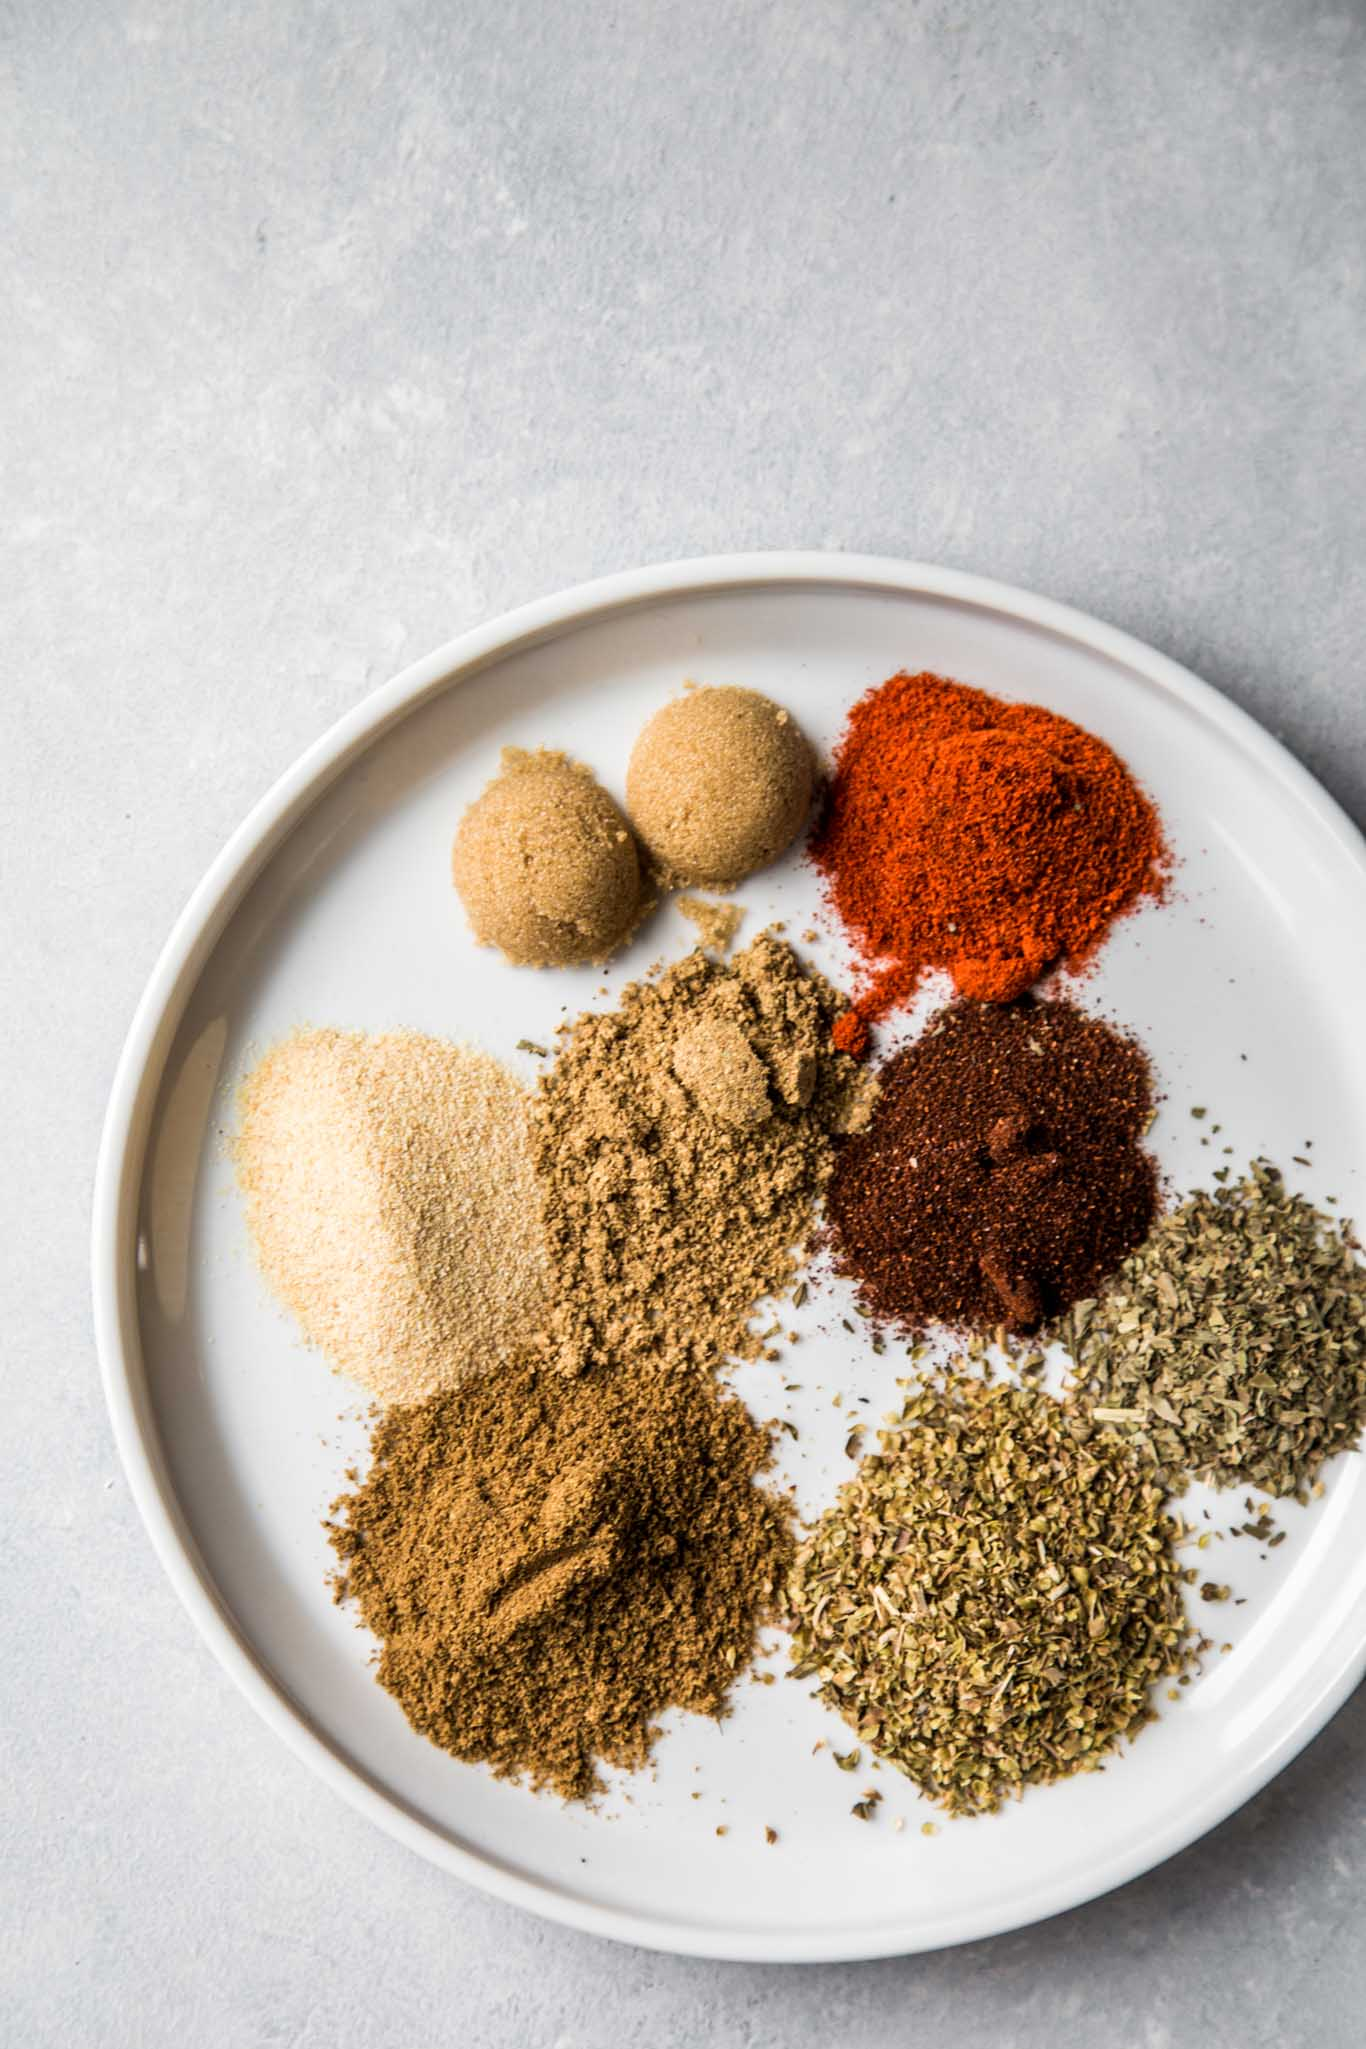 Spices for carnitas tacos